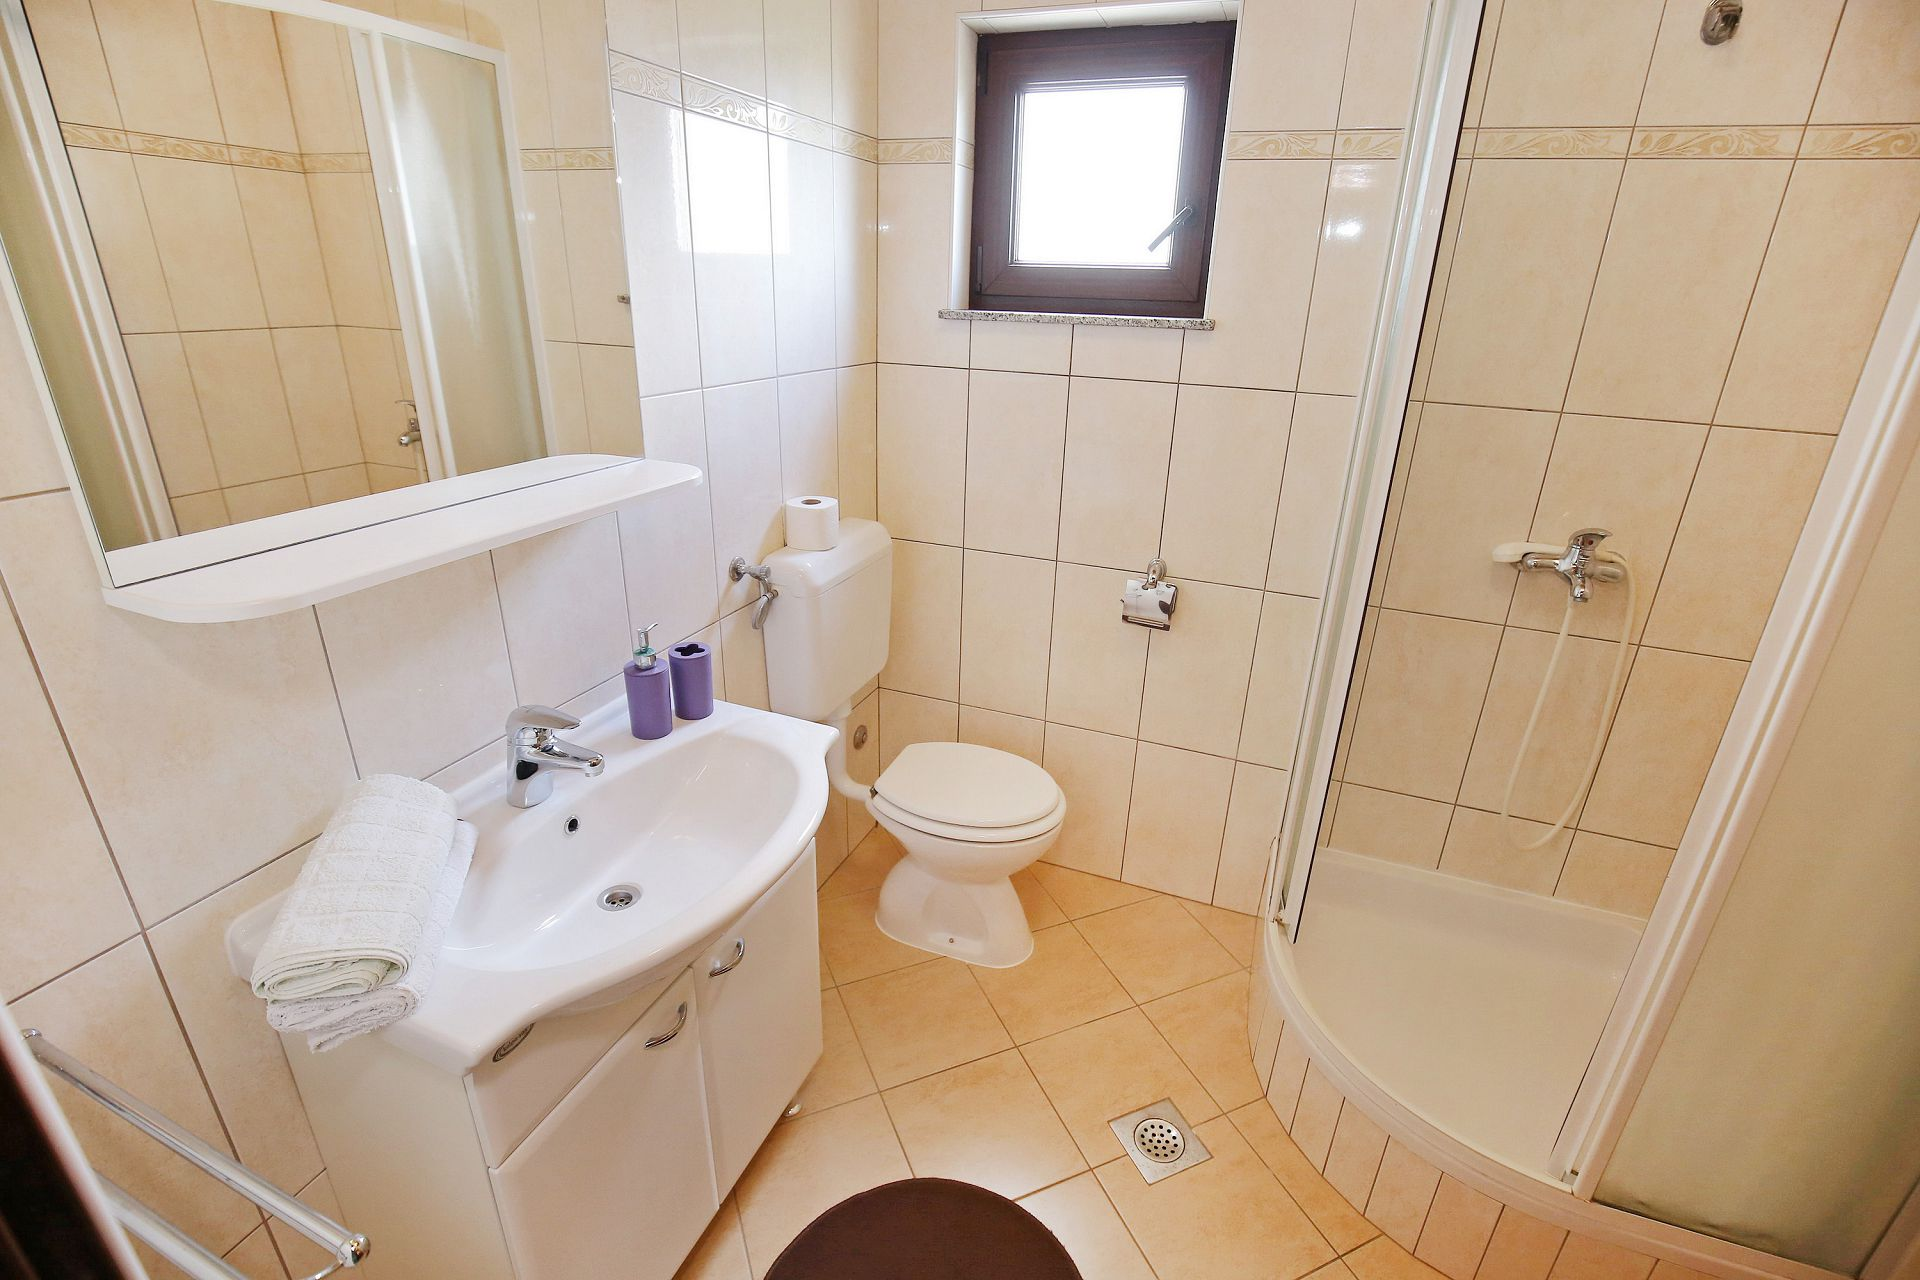 00418ZATZ - Zaton (Zadar) - Apartments Croatia - A3P(2+2): bathroom with toilet